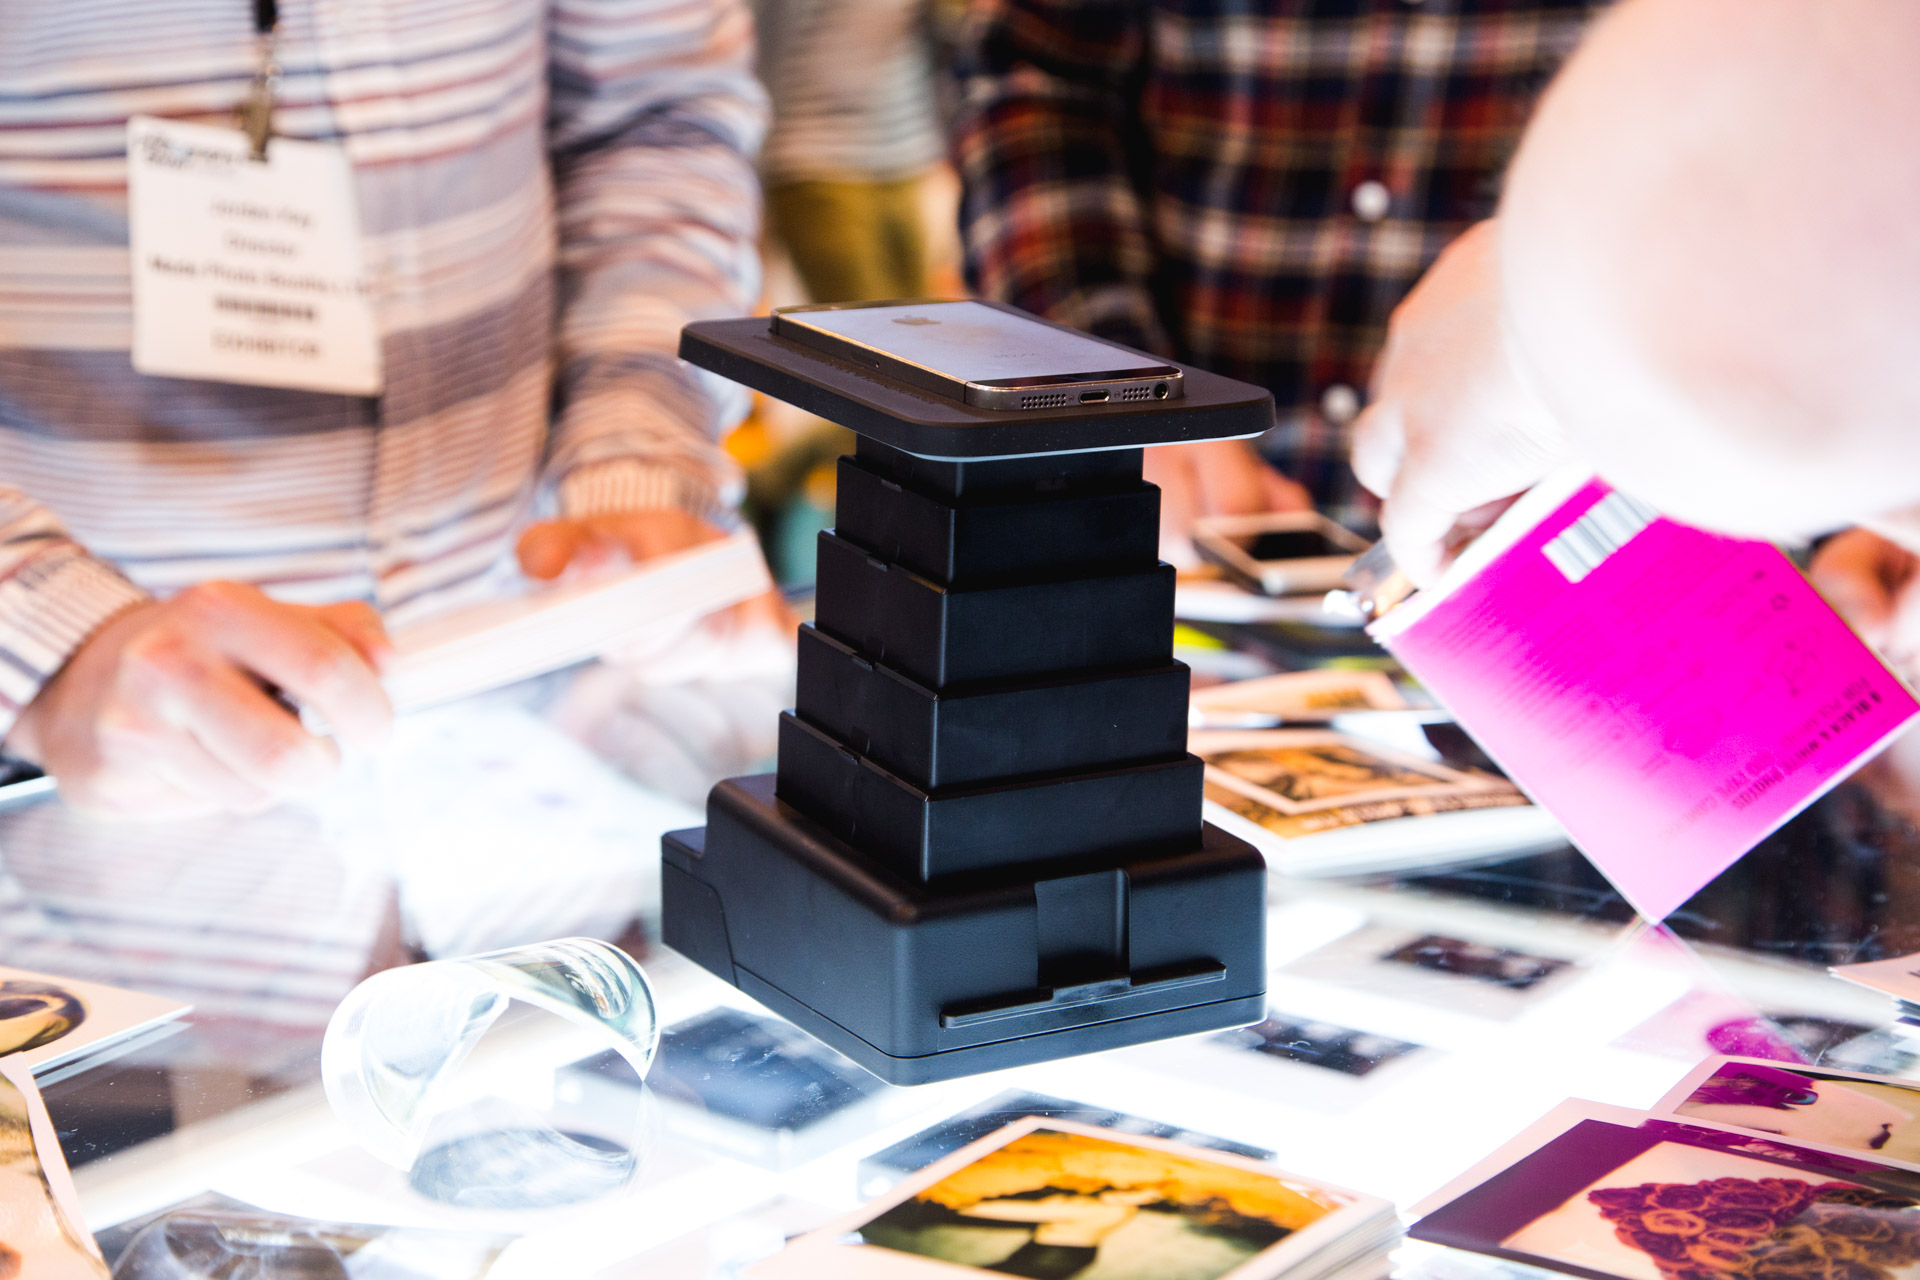 Impossible showed their Instant Lab Universal product. This allows you to expose an image on your smartphone or tablet to polaroid film.